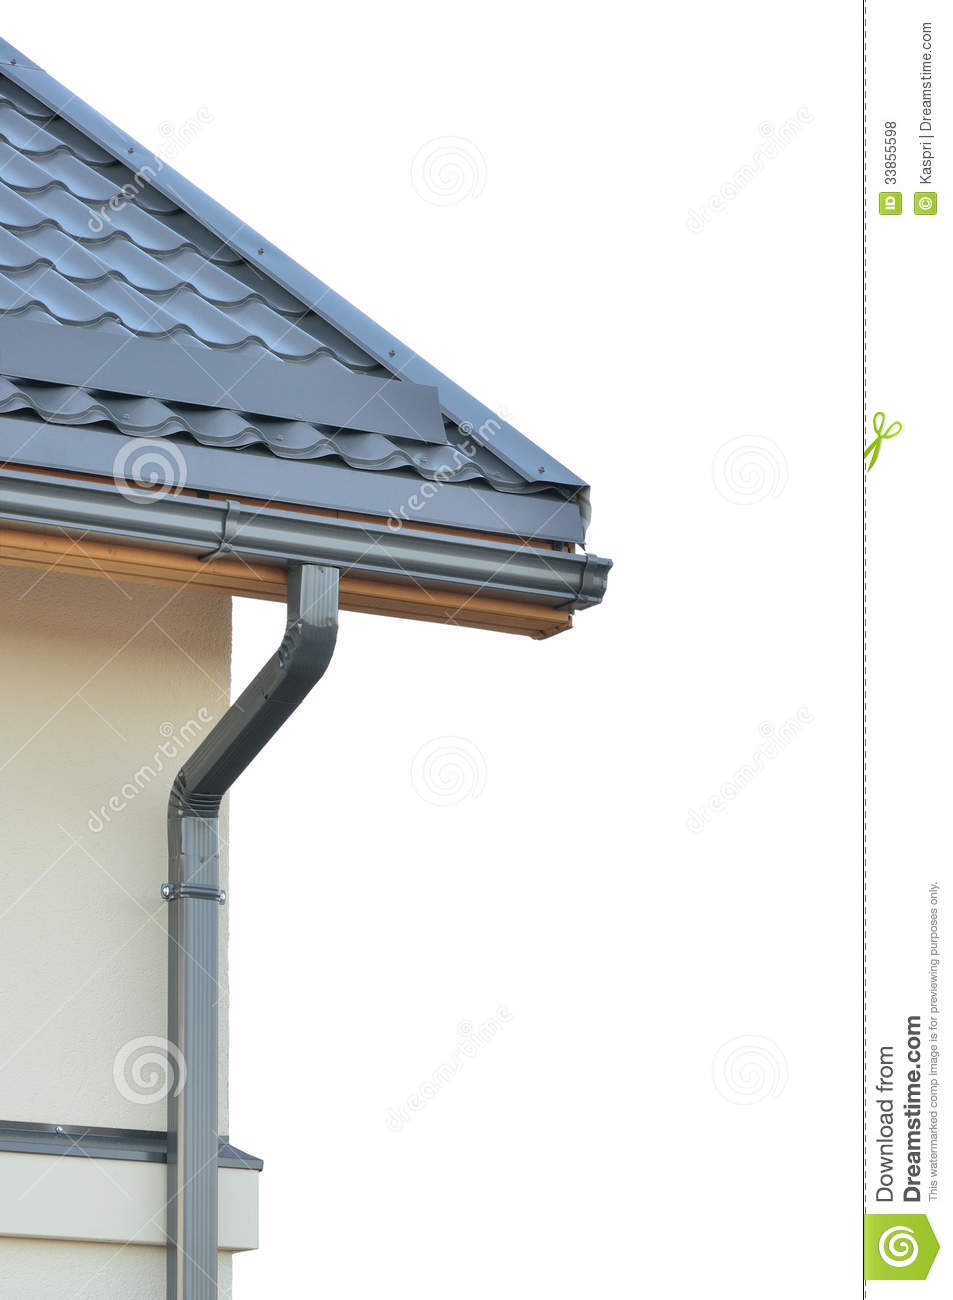 Brand New Roofing Grey Rooftop Isolated Gray Roof Tiles